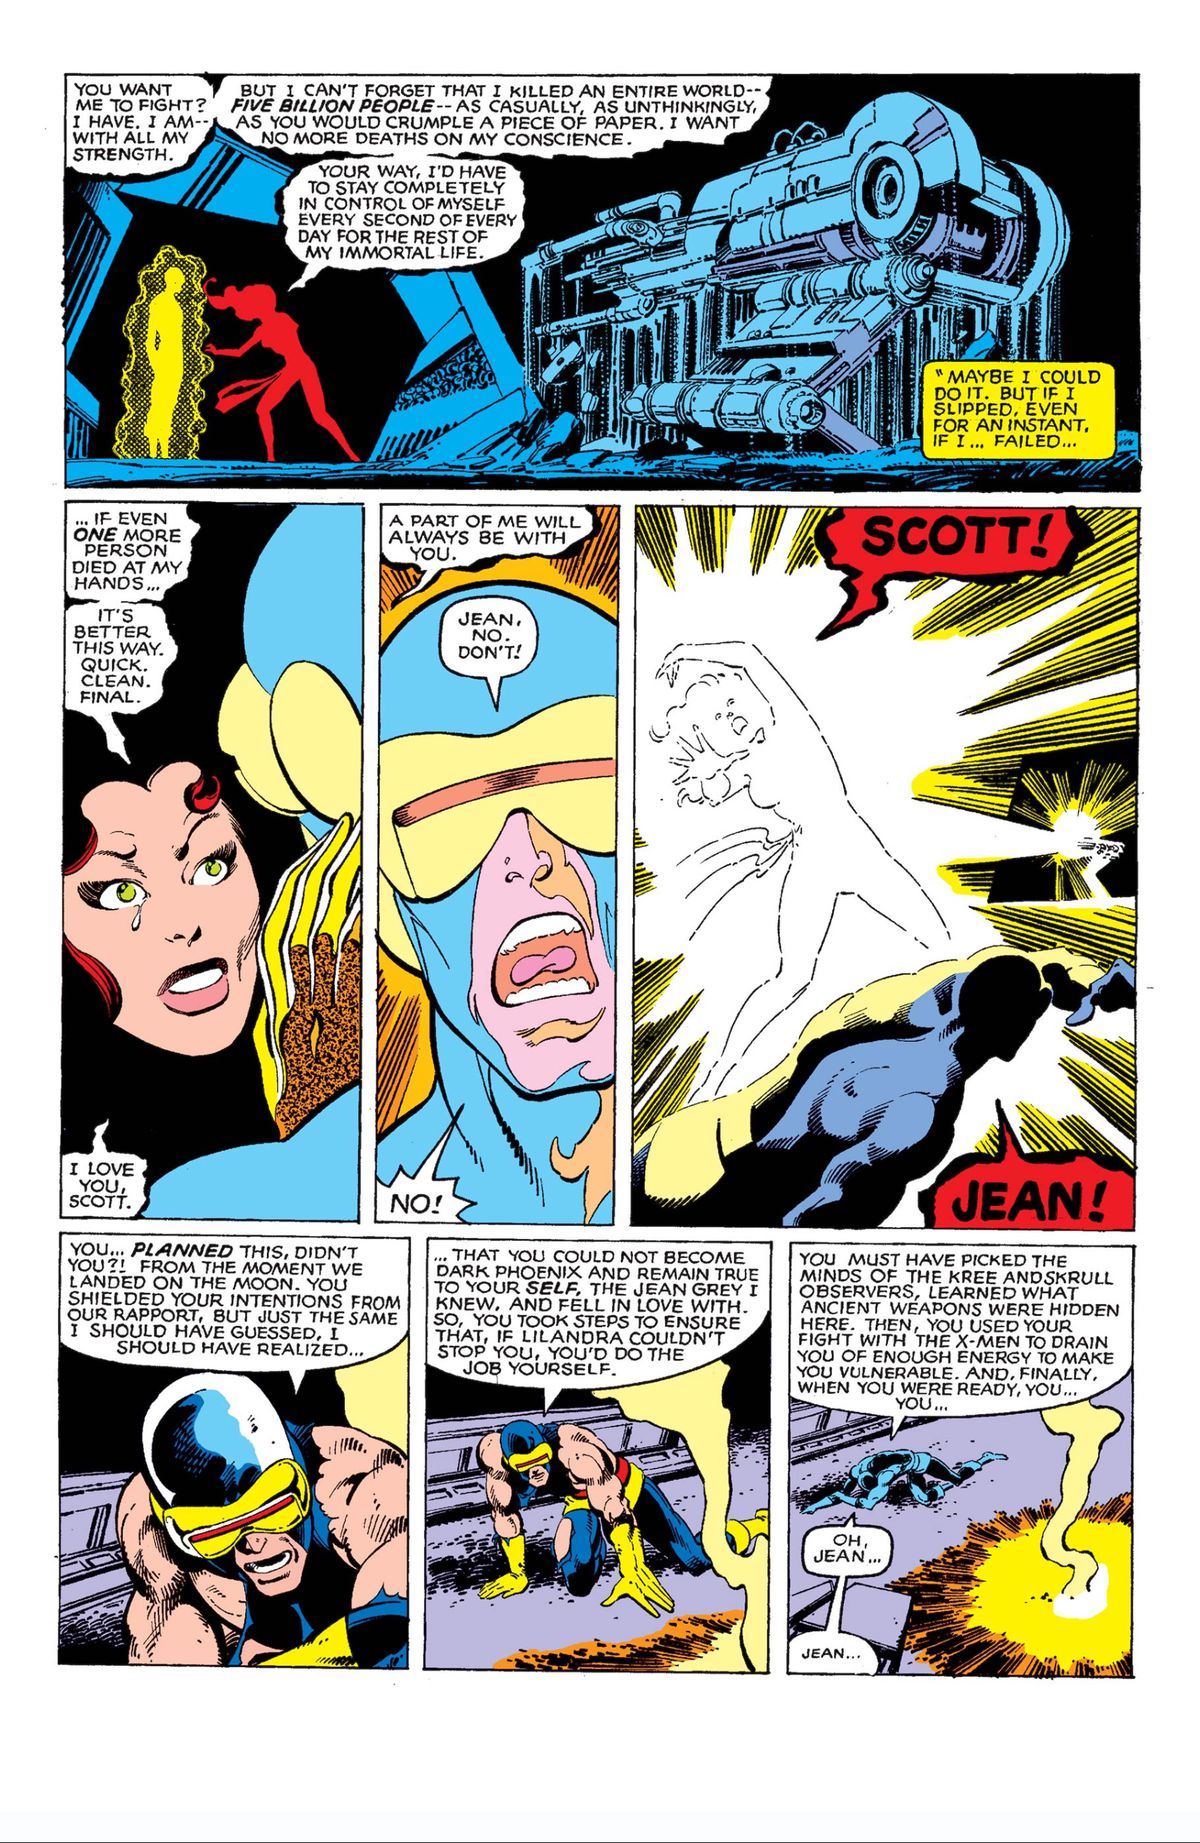 Jean Grey chooses to die at the end of The Phoenix Saga, Uncanny X-Men #137, Marvel Comics (1980).